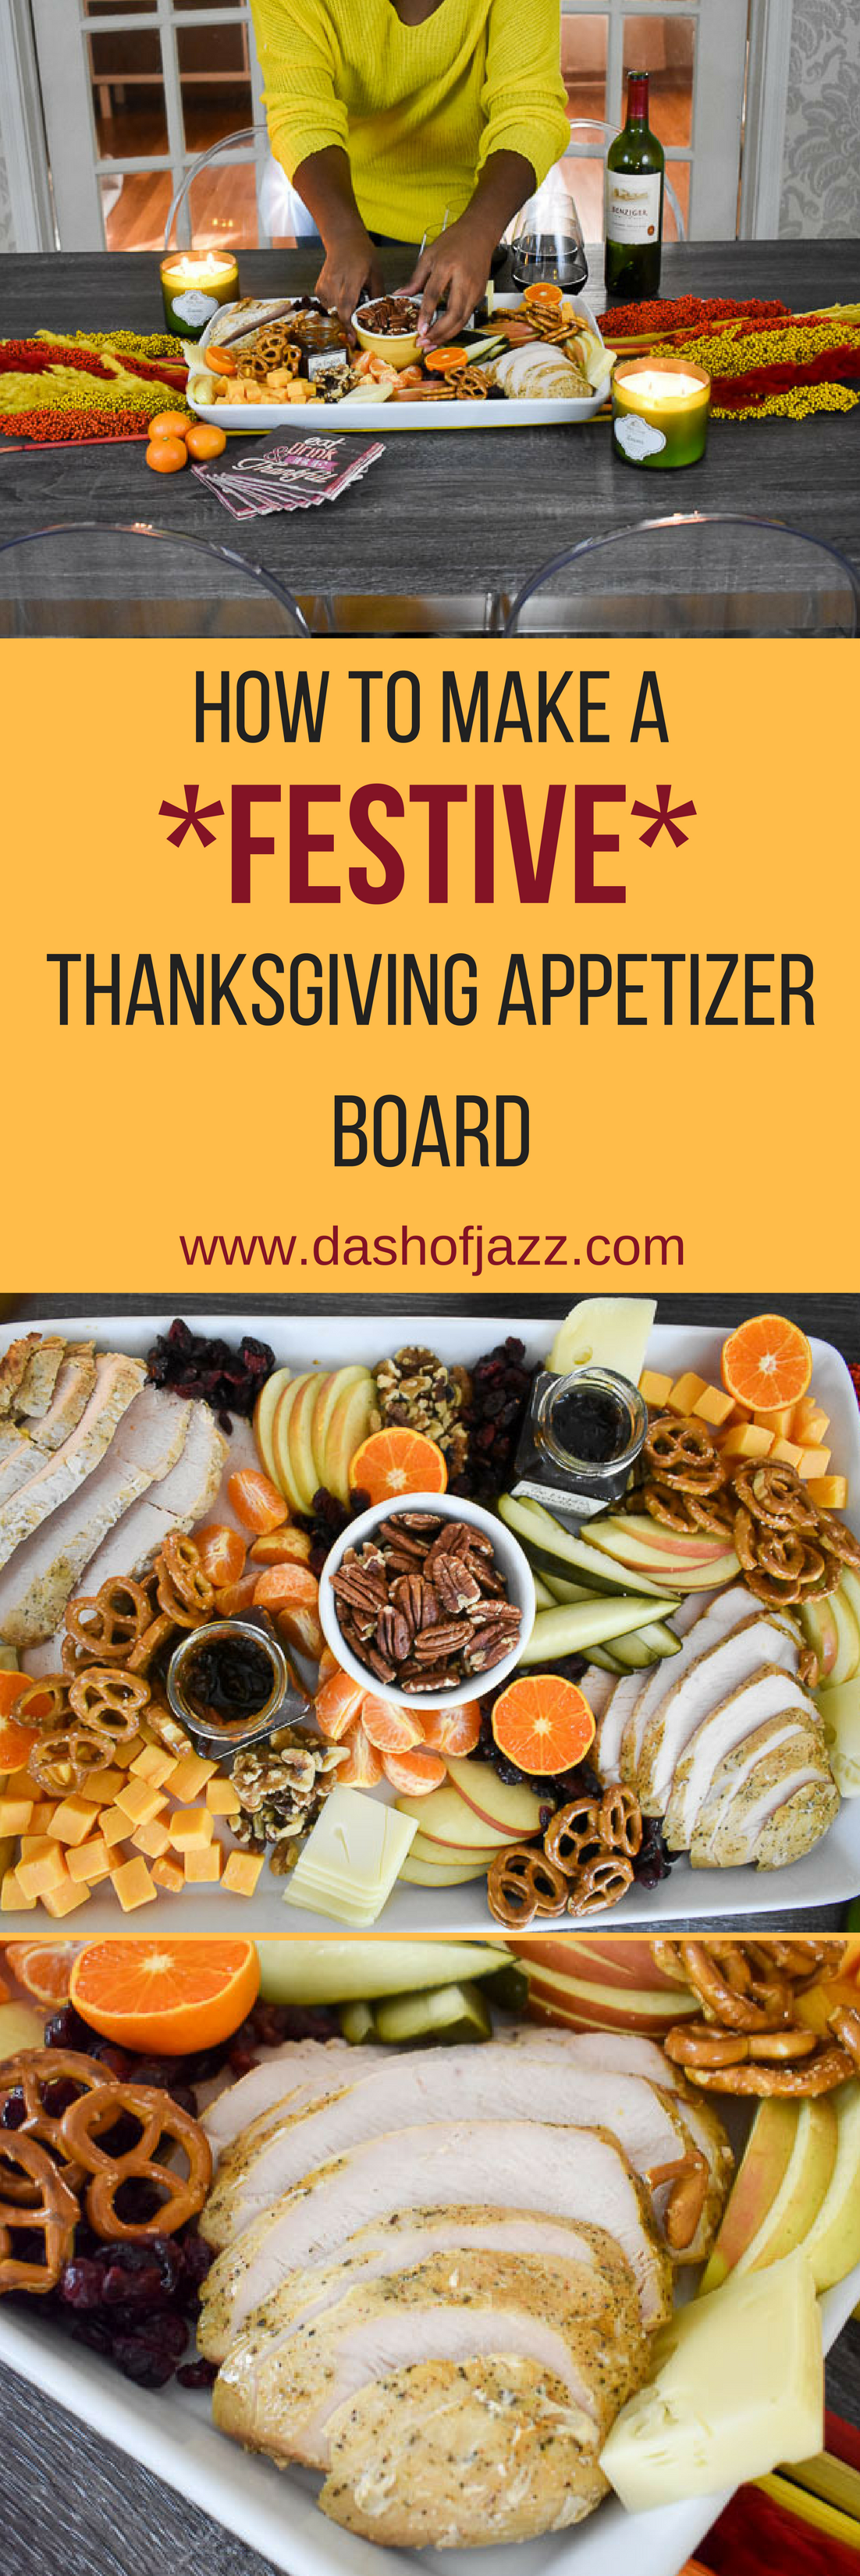 Because dinner is never ready on time. Make an easy, festive Thanksgiving appetizer board to keep guests happy (and out of the kitchen) until the feast .Tutorial and inspiration by Dash of Jazz